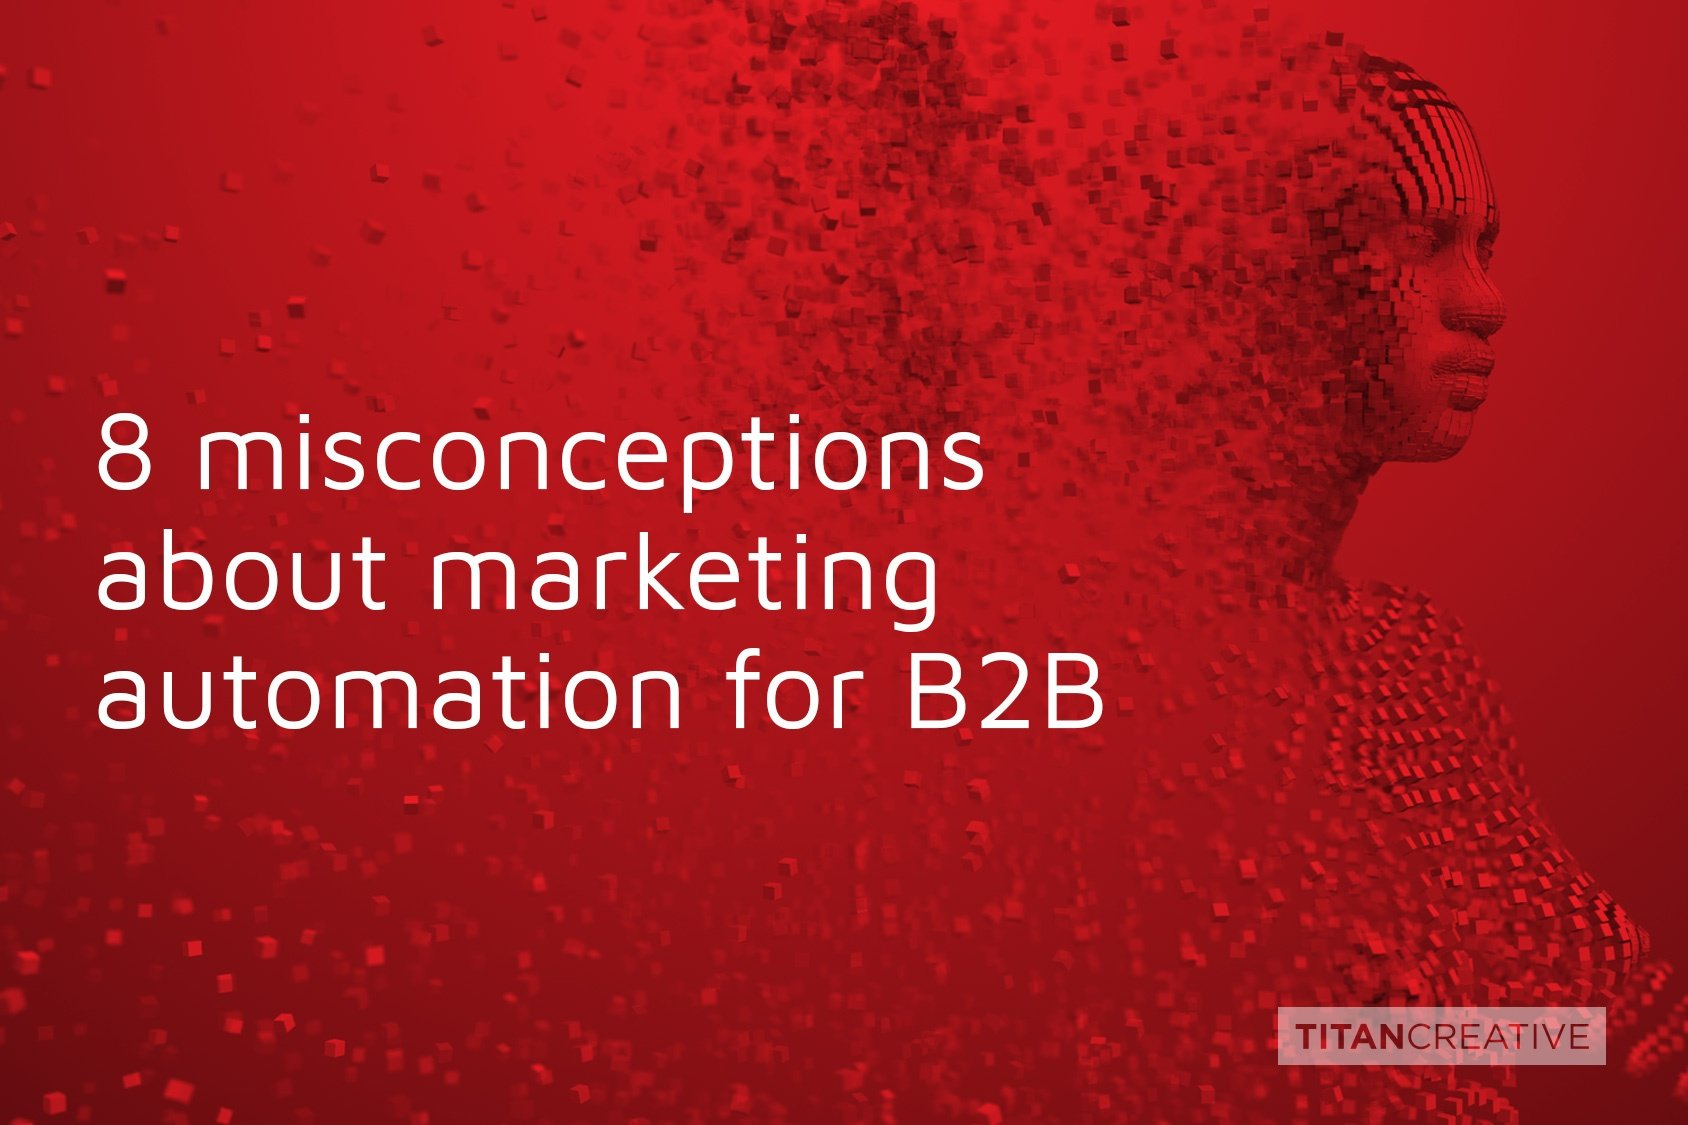 8 misconceptions about marketing automation for B2B.